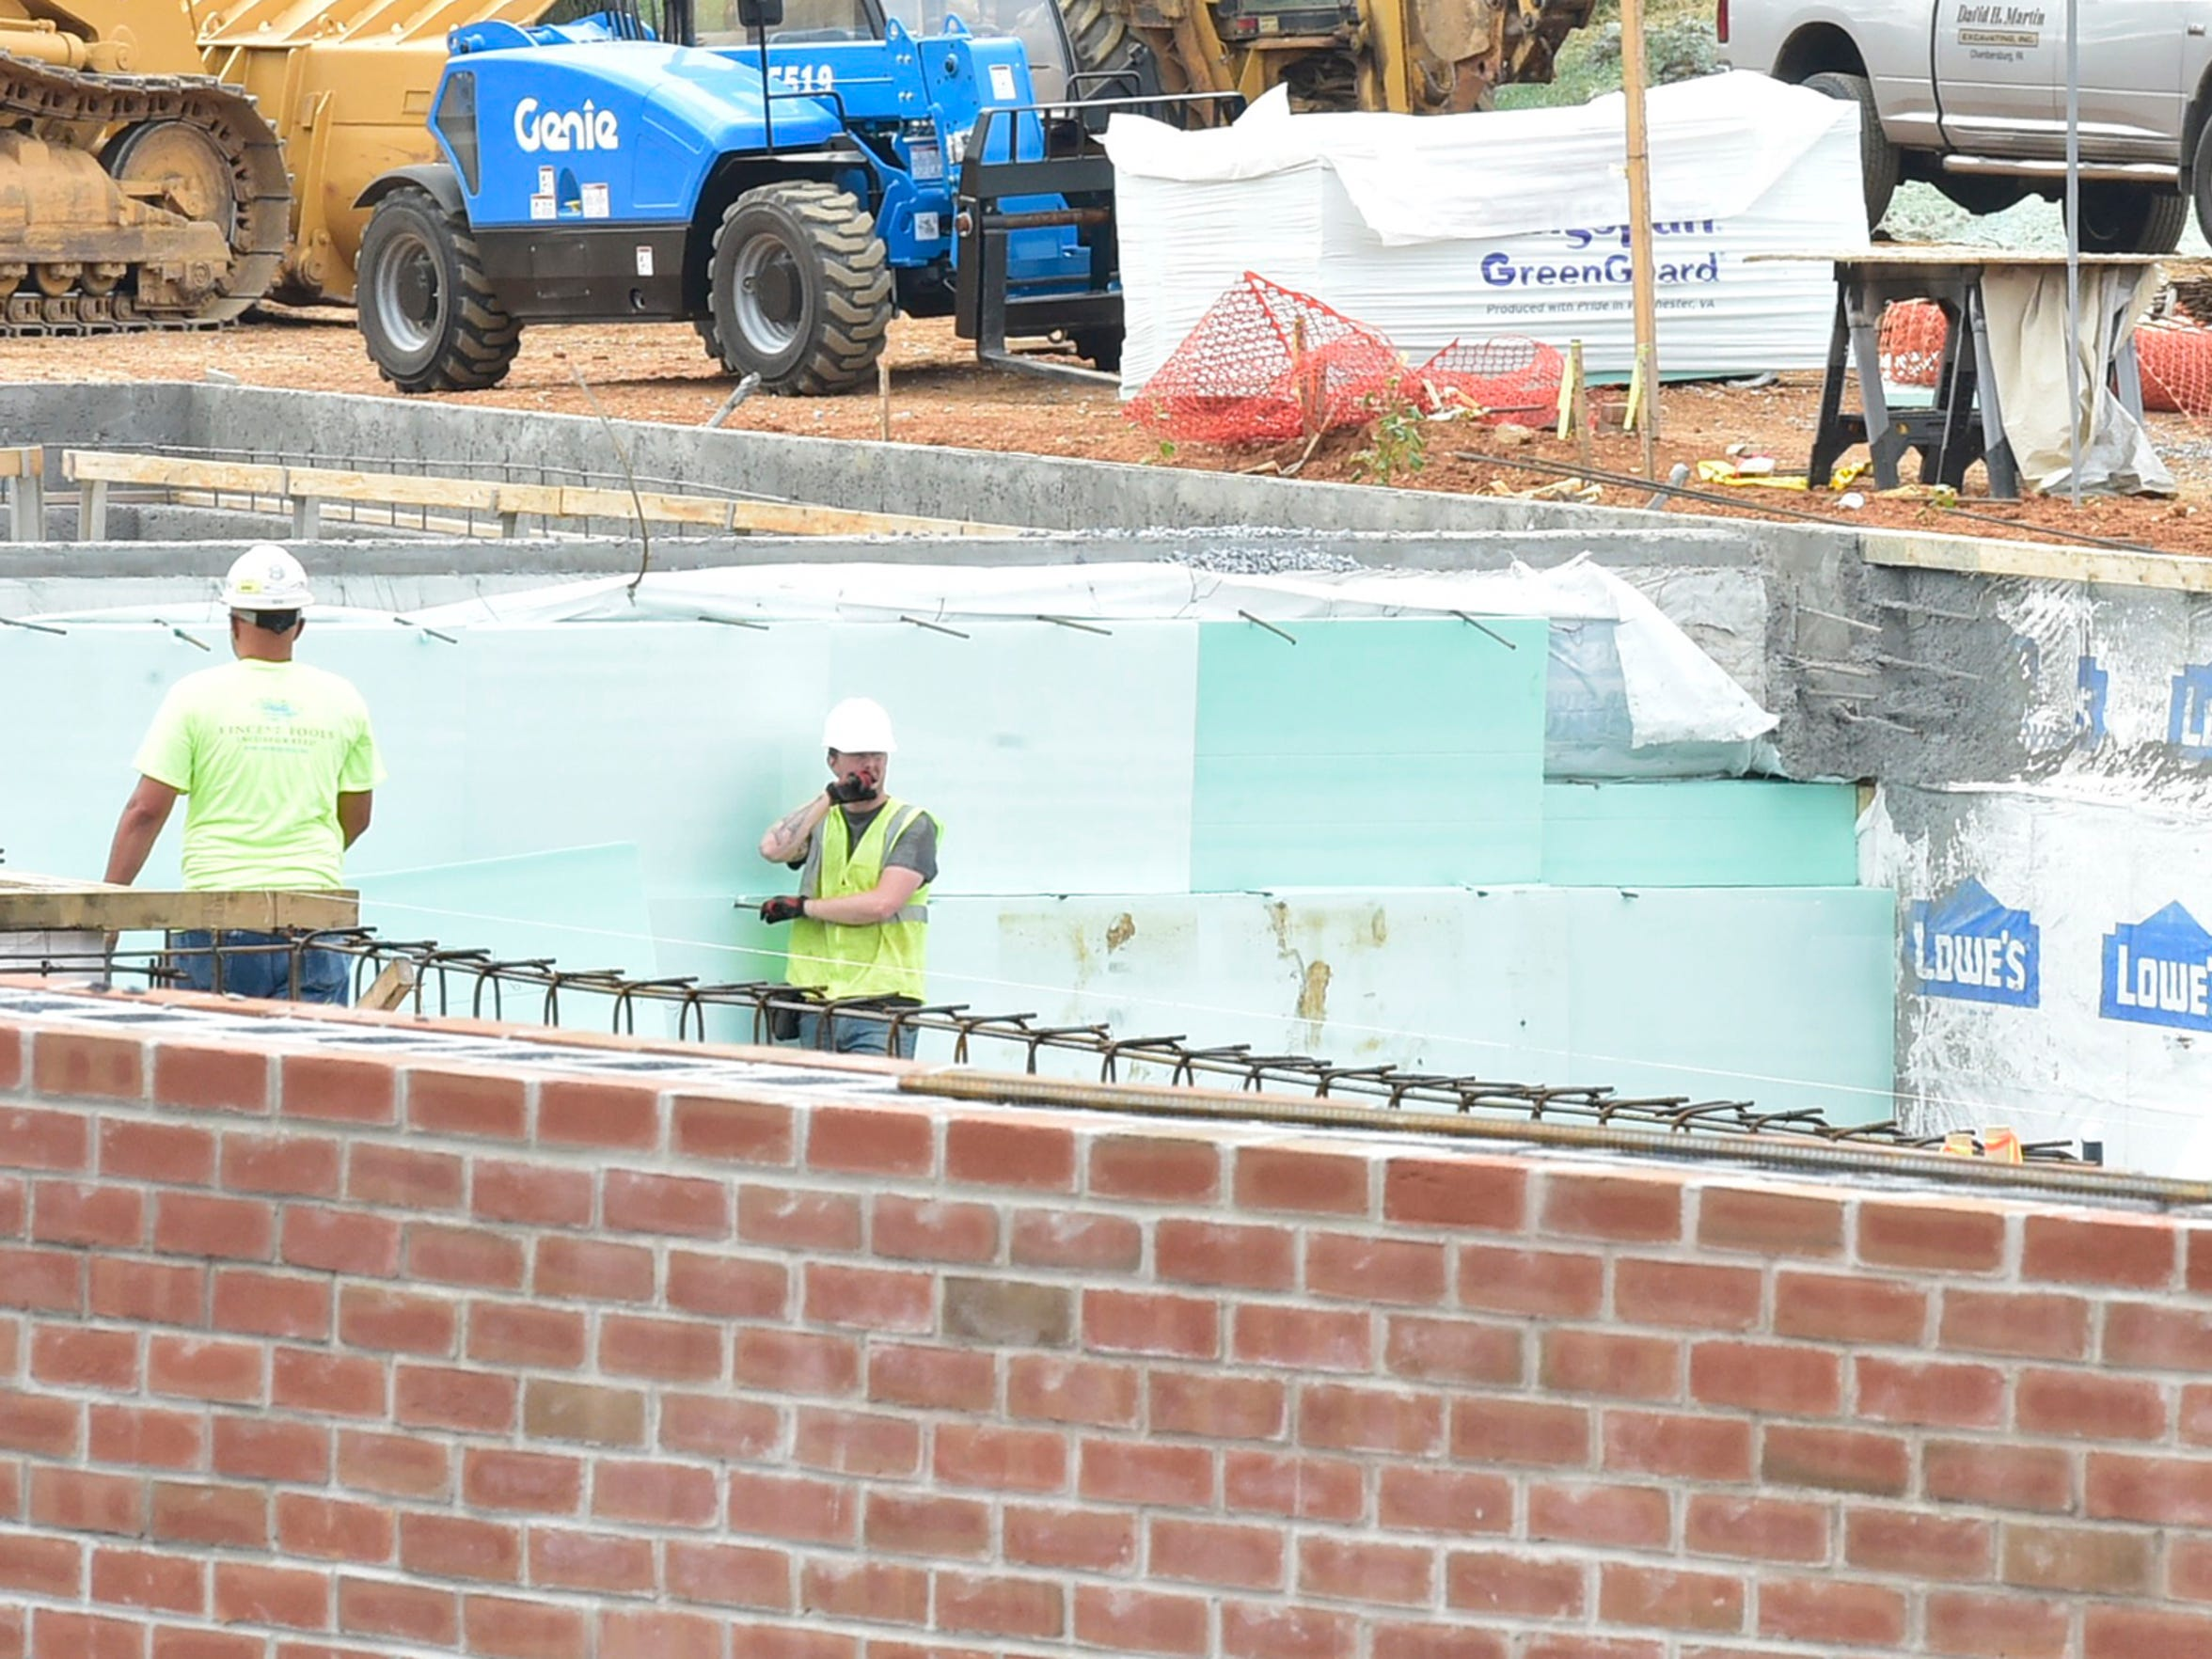 Work continues in September at the Chambersburg family aquatic center that replaces Municipal Pool at Chambersburg Memorial Park. The new facility should be open by Memorial Day 2018.